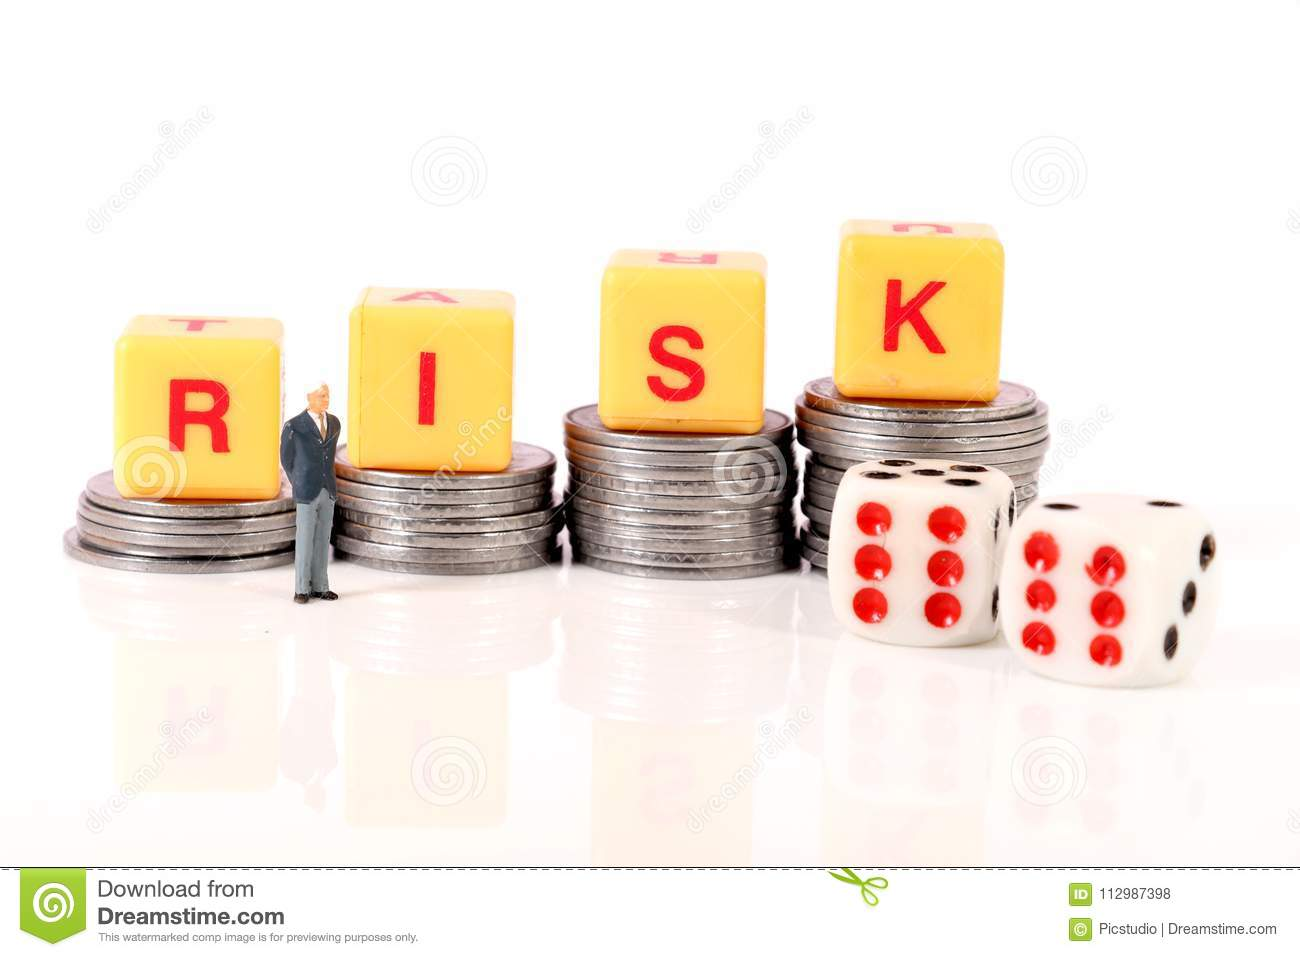 Money and risk